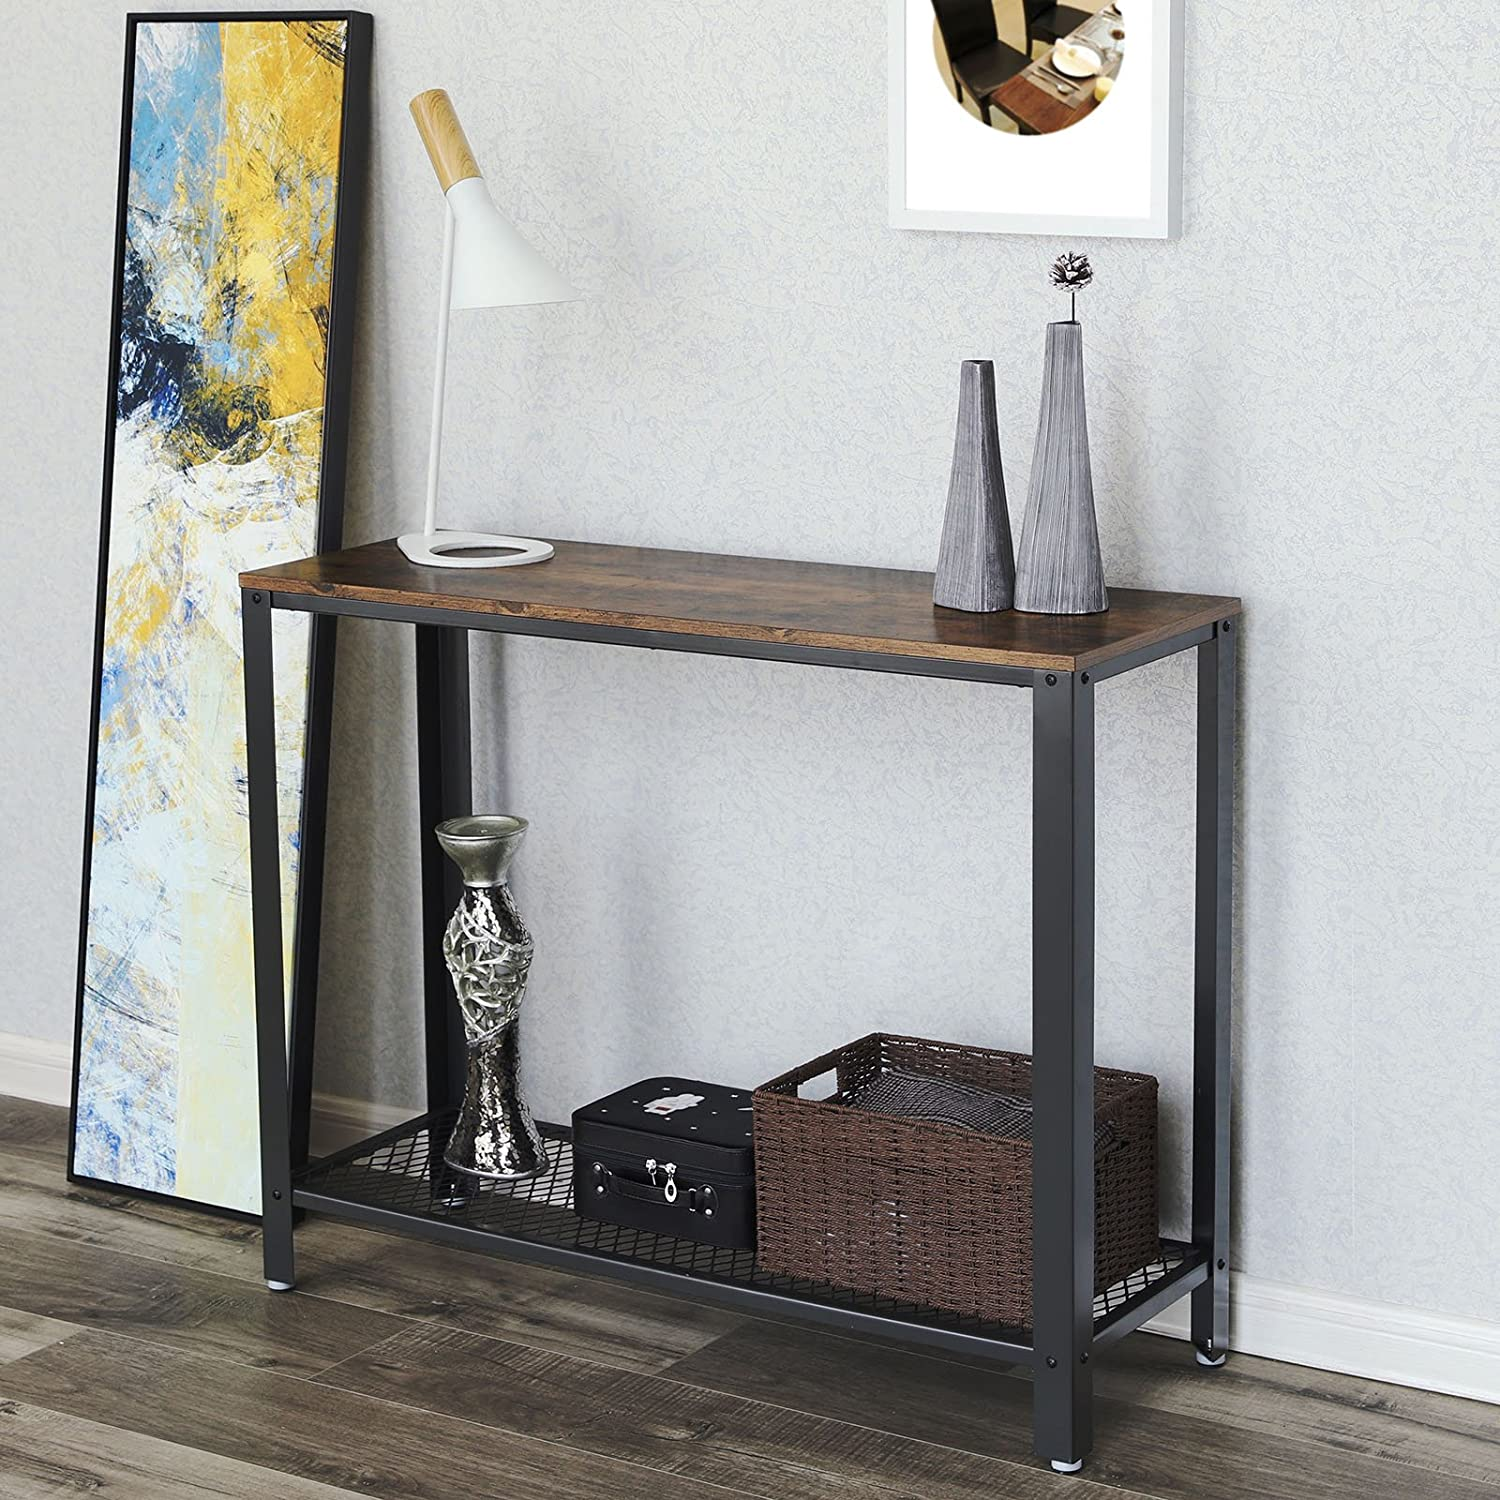 VASAGLE Vintage Console, Sofa Side Table for Entryway Living Room, Easy Assembly and Sturdy Metal Frame ULNT80X